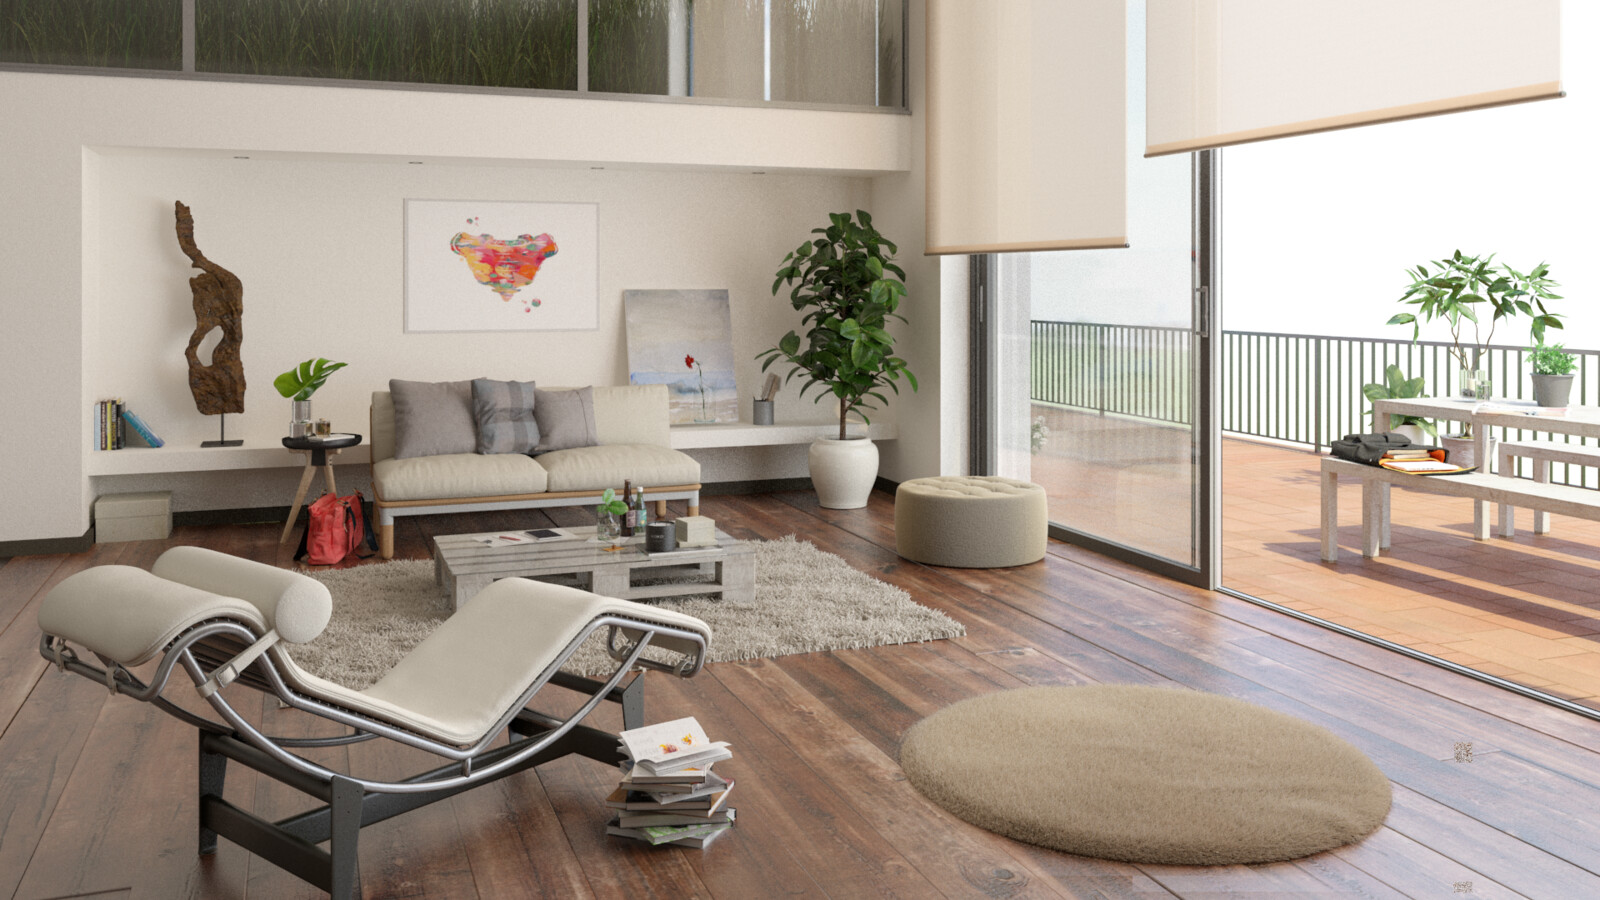 Interior Render - the assets & materials are not made by myself -